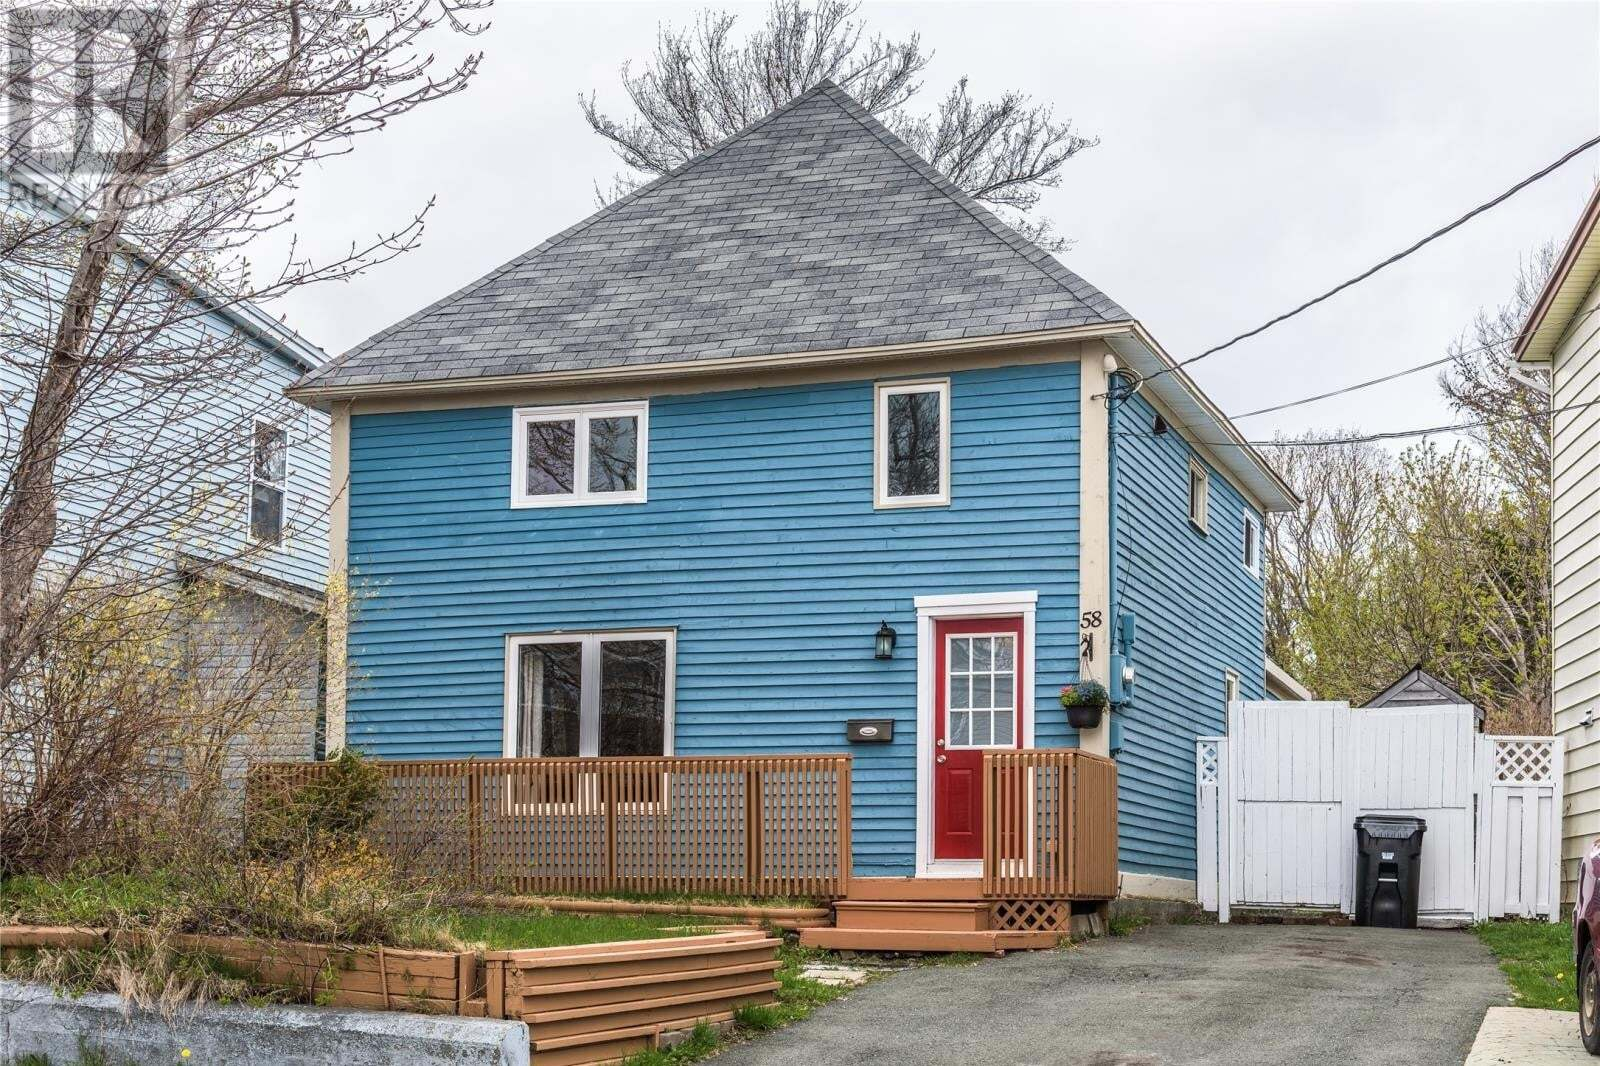 House for sale at 58 Freshwater Rd St. John's Newfoundland - MLS: 1214175